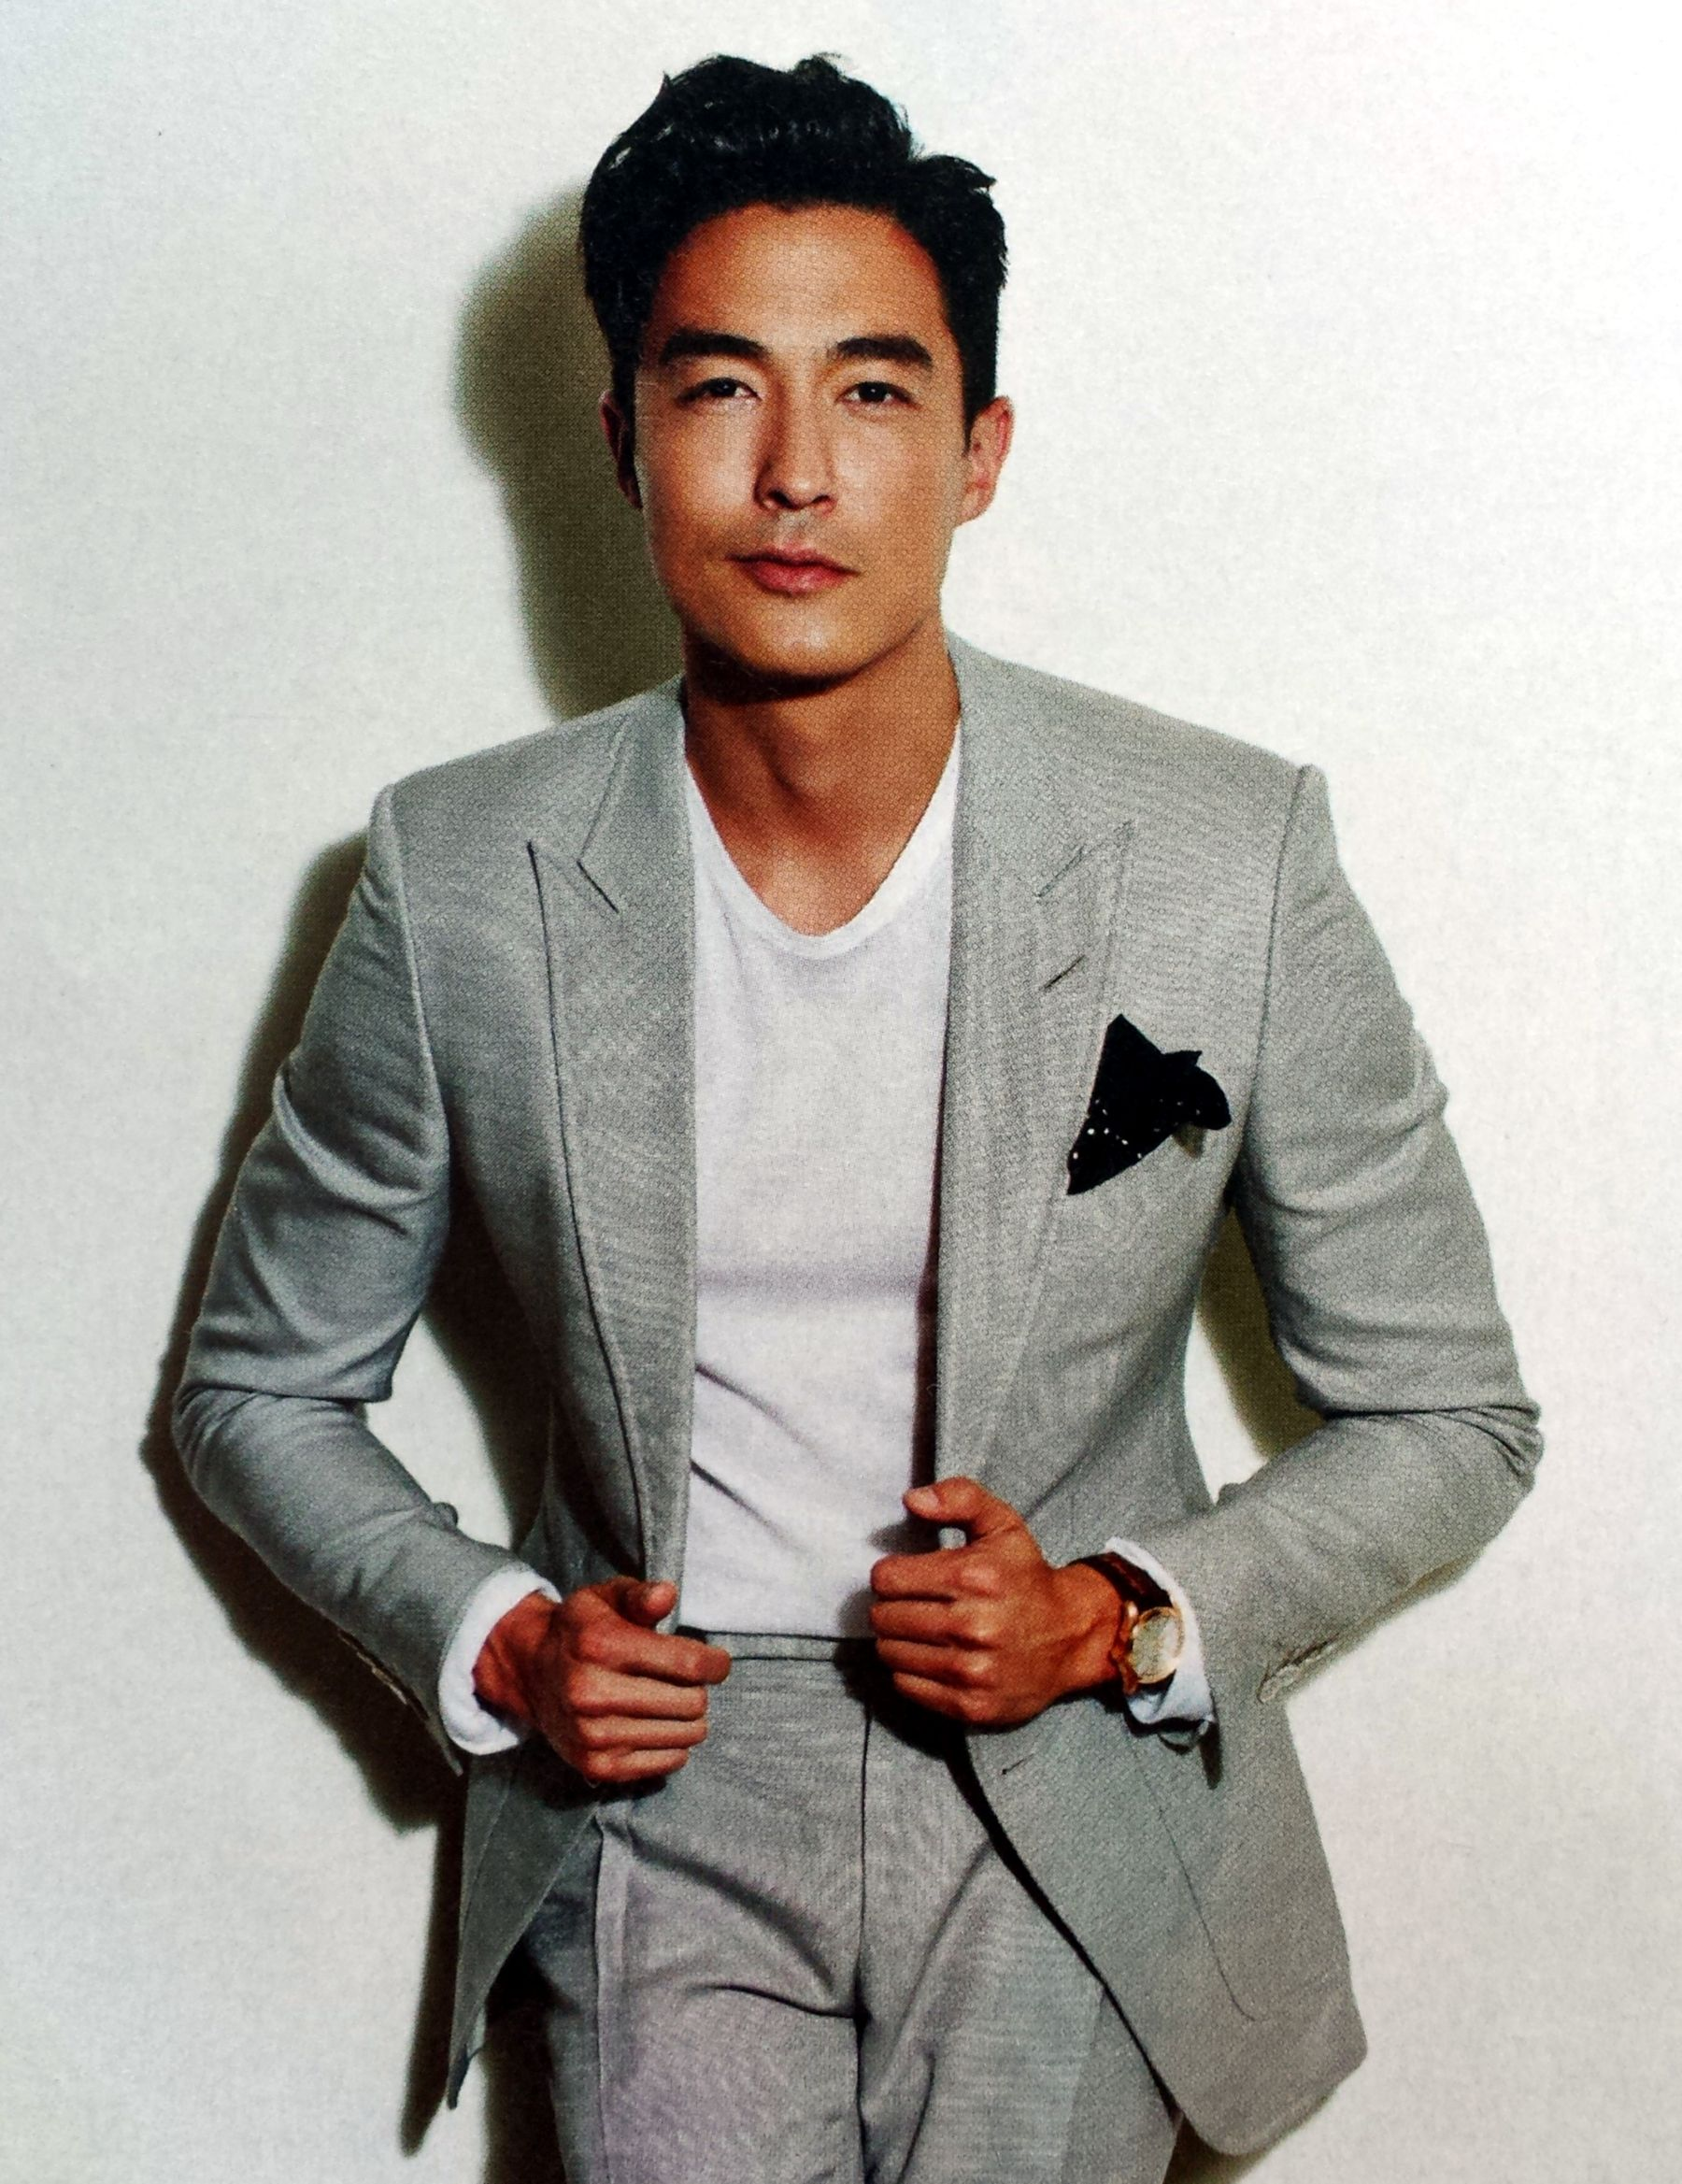 daniel henney moviesdaniel henney instagram, daniel henney gif, daniel henney movies, daniel henney parents, daniel henney drama list, daniel henney haircut, daniel henney married, daniel henney father, daniel henney film, daniel henney interview, daniel henney instagram official, daniel henney facebook, daniel henney age, daniel henney twitter, daniel henney личная жизнь, daniel henney kiss scene, daniel henney big hero 6, daniel henney height, daniel henney and lee na young, daniel henney new movie